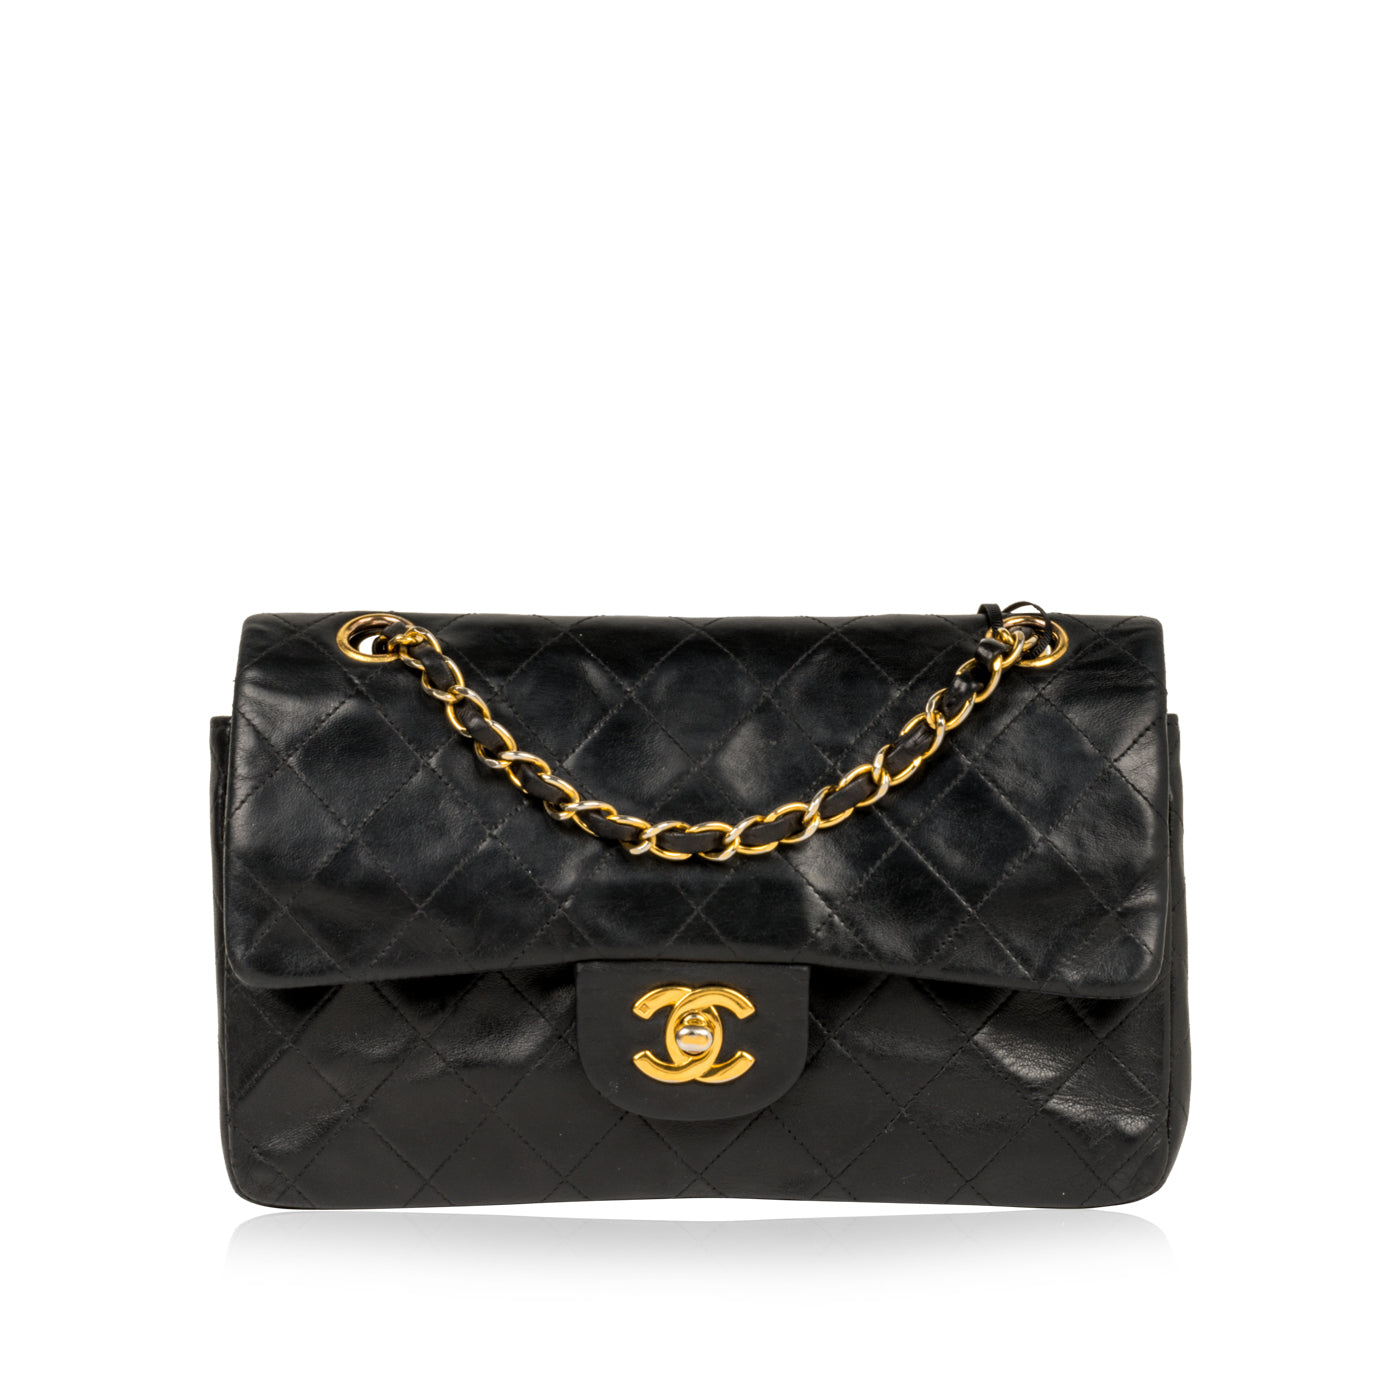 74a5a1a90b5827 Chanel - Classic Flap Bag Small - Black Lambskin - GHW - Vintage ...